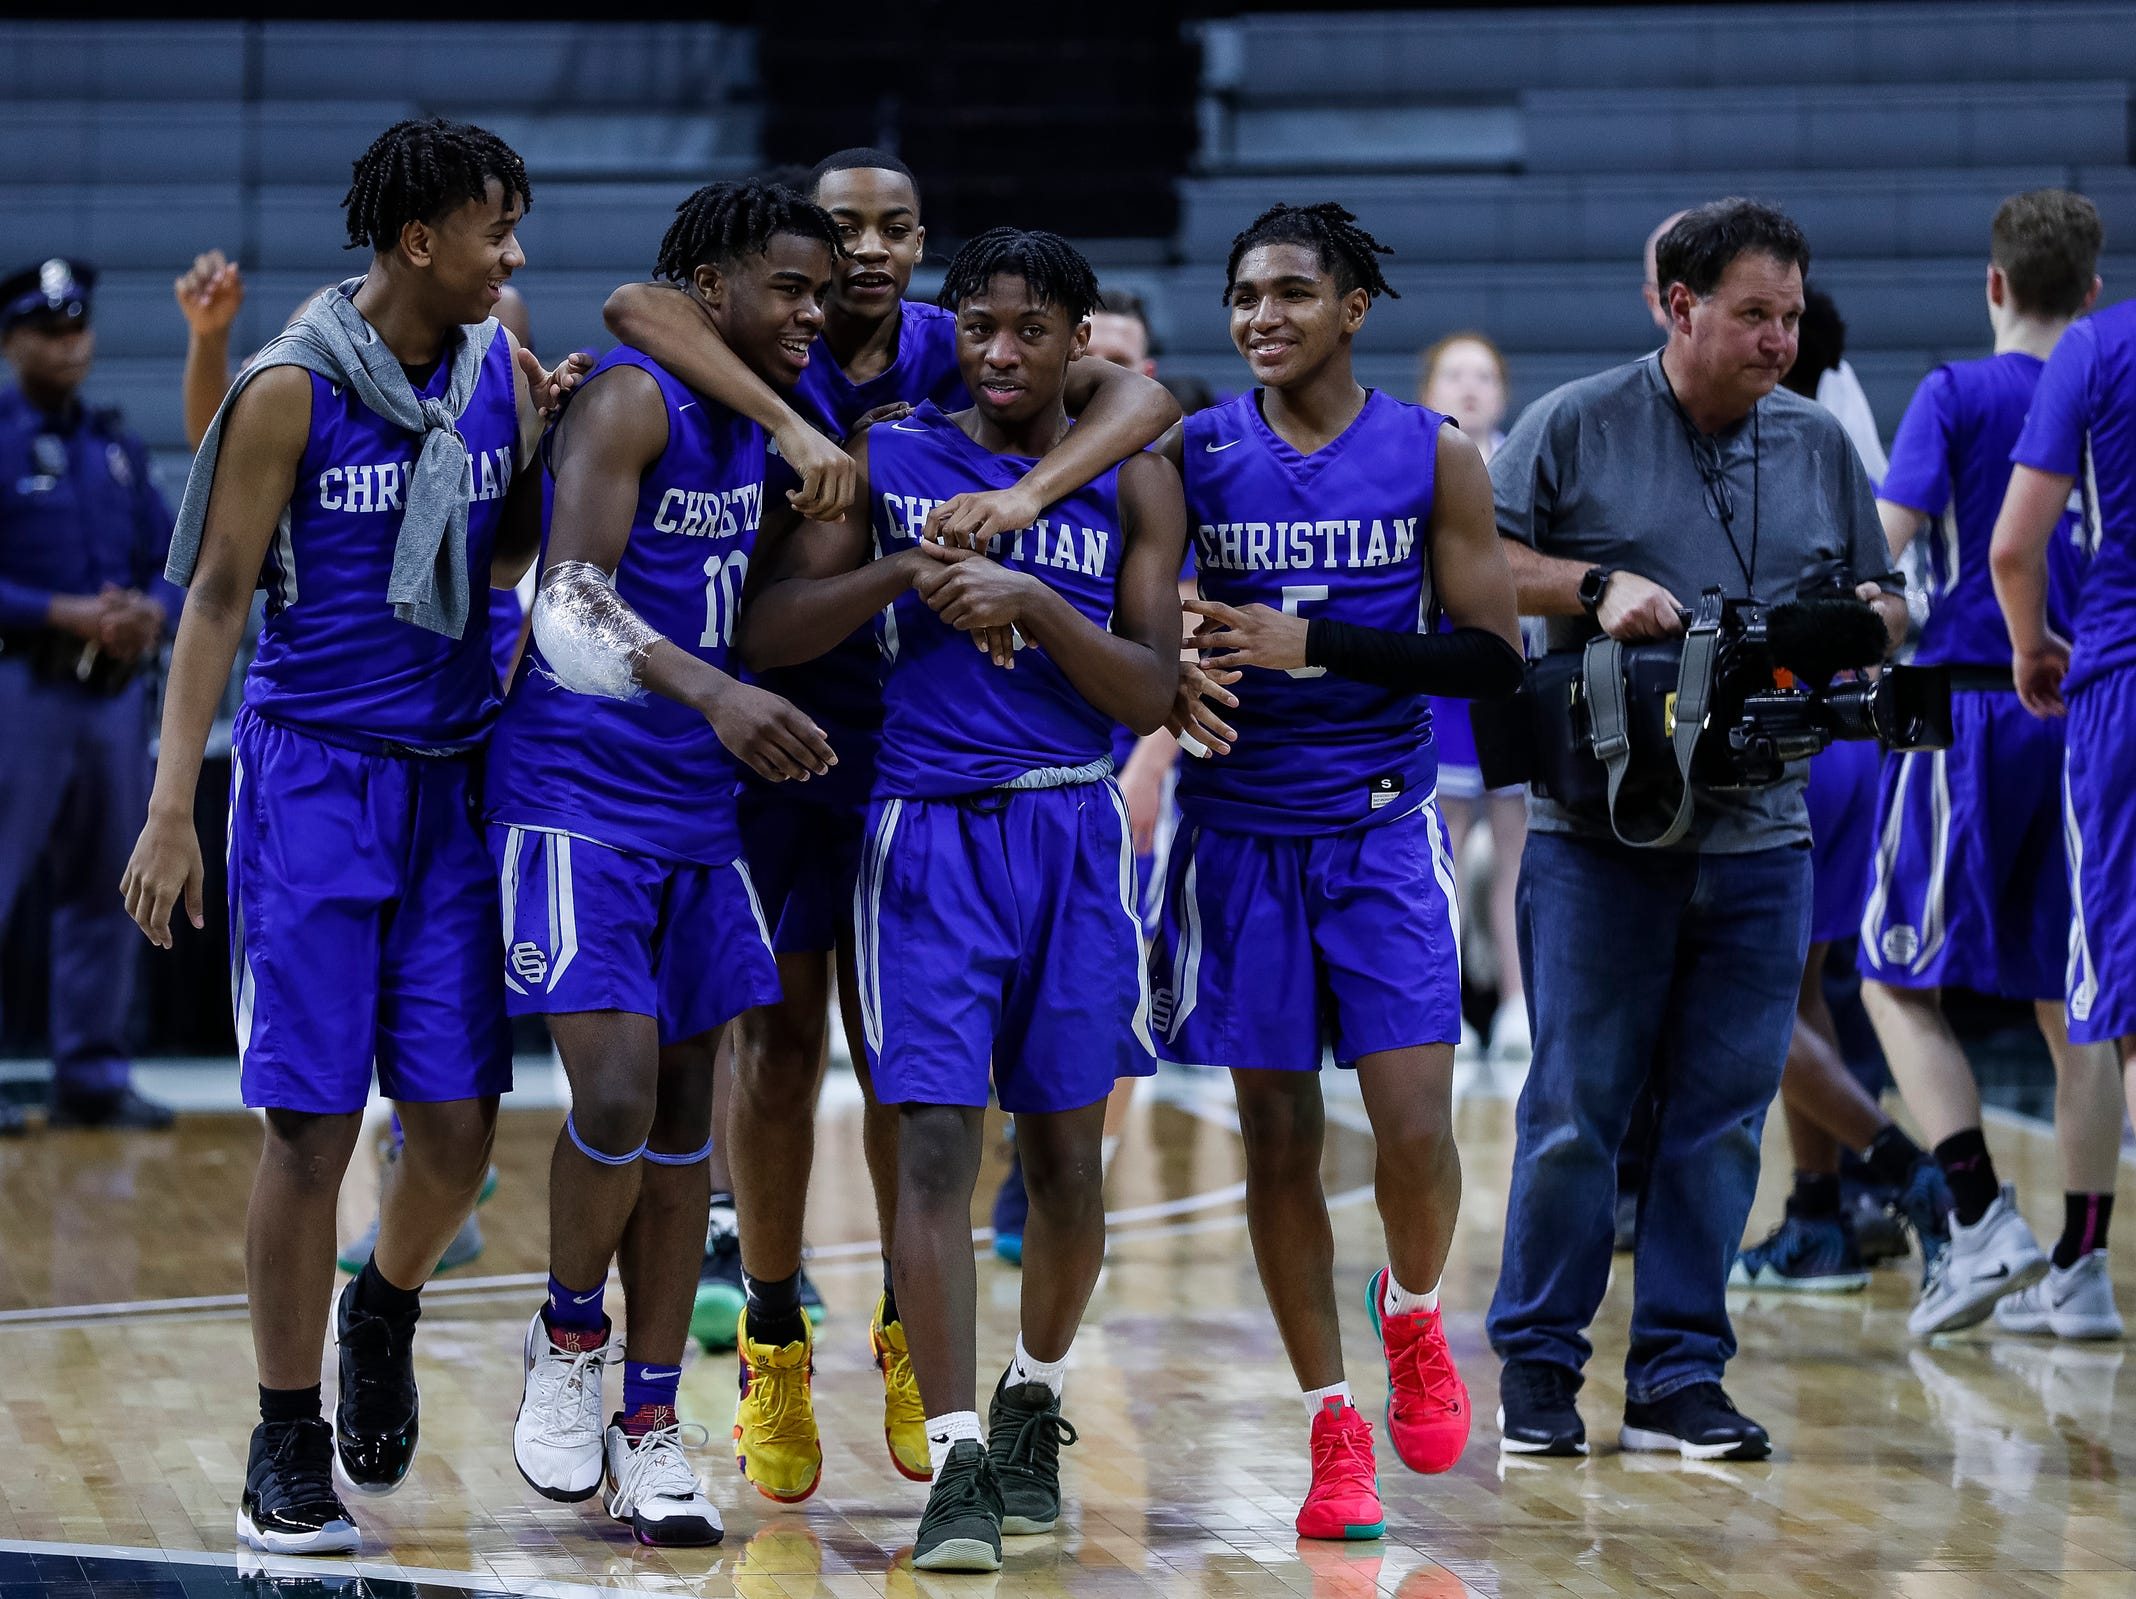 Southfield Christian players celebrate their 55-28 victory over Dollar Bay at the MHSAA Division 4 semifinal at the Breslin Center in East Lansing, Thursday, March 14, 2019.